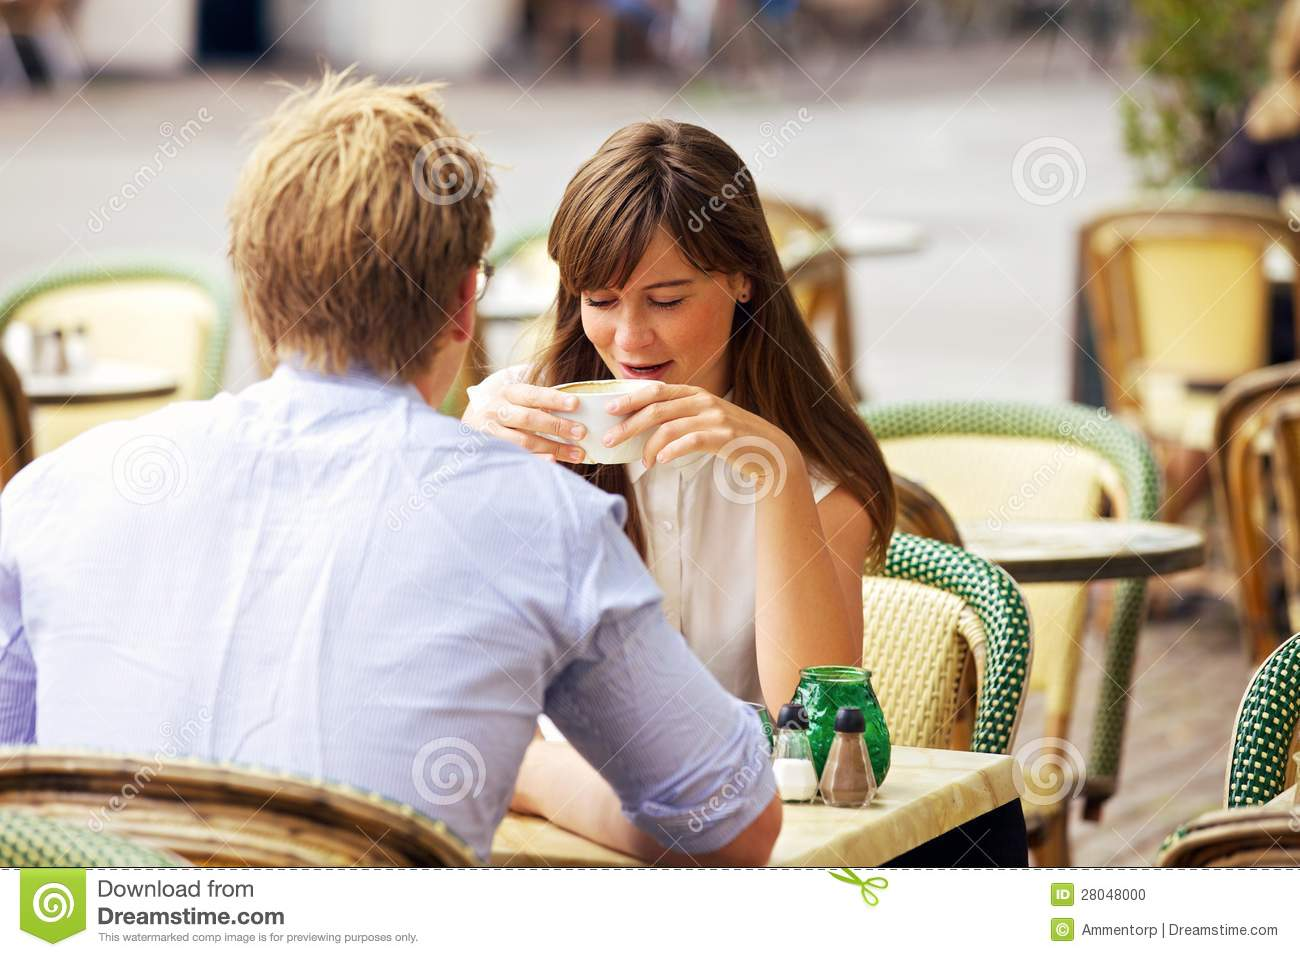 Cafe dating site